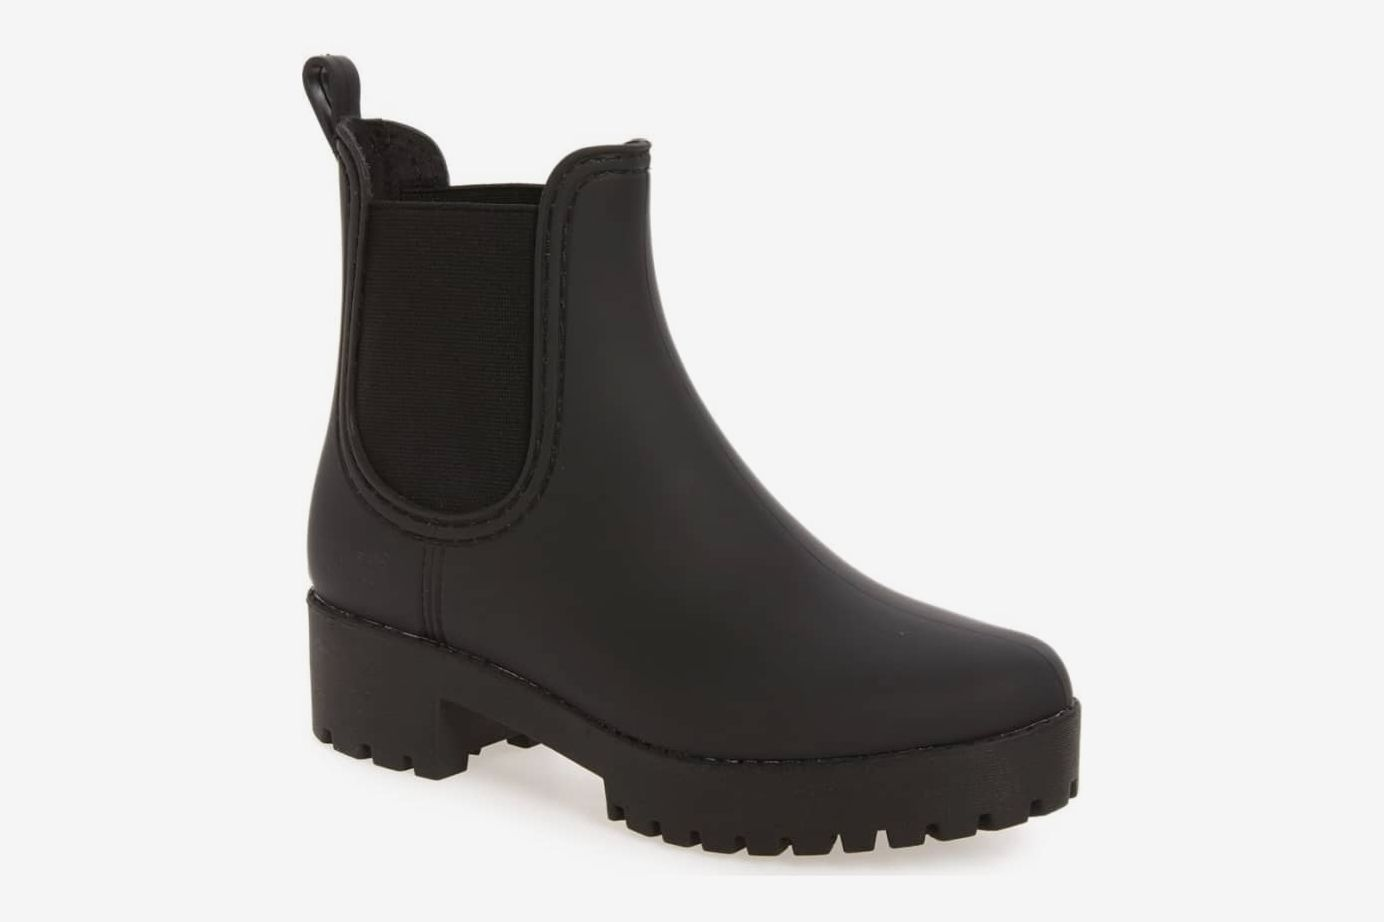 eb04972ae Jeffrey Campbell Cloudy Waterproof Chelsea Rain Boot